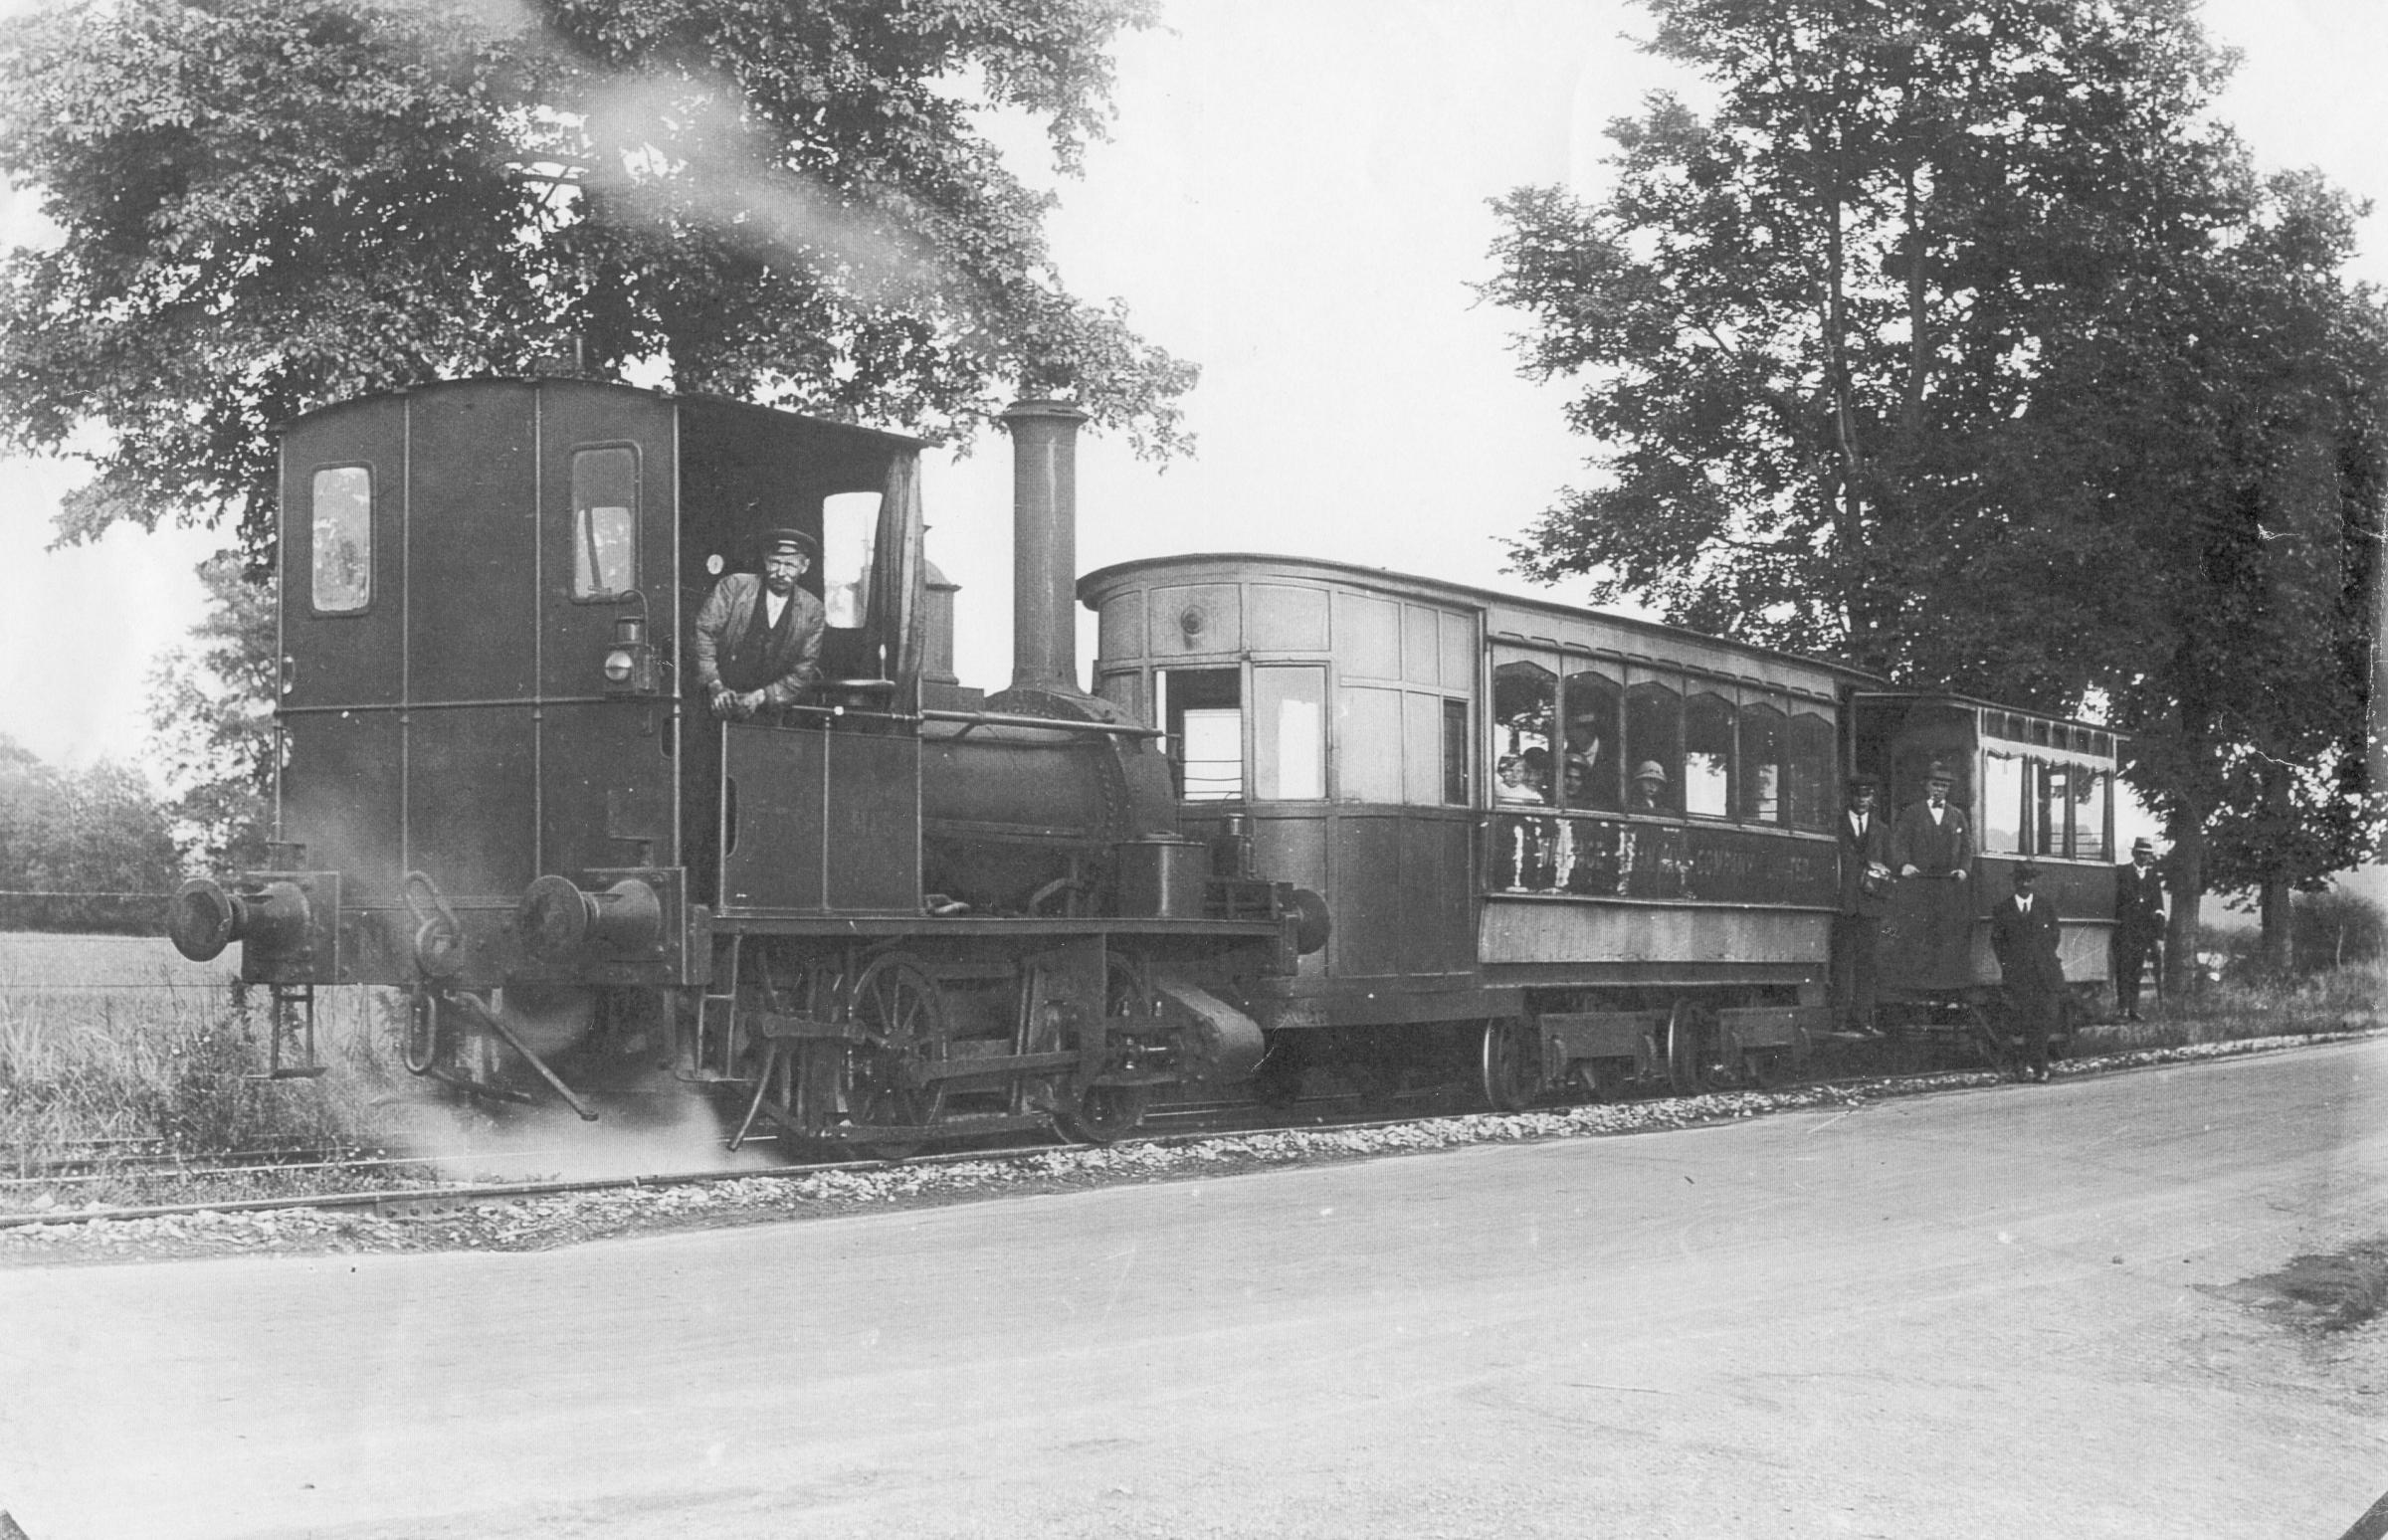 One of the old steam-powered trams on the Wantage Tramway